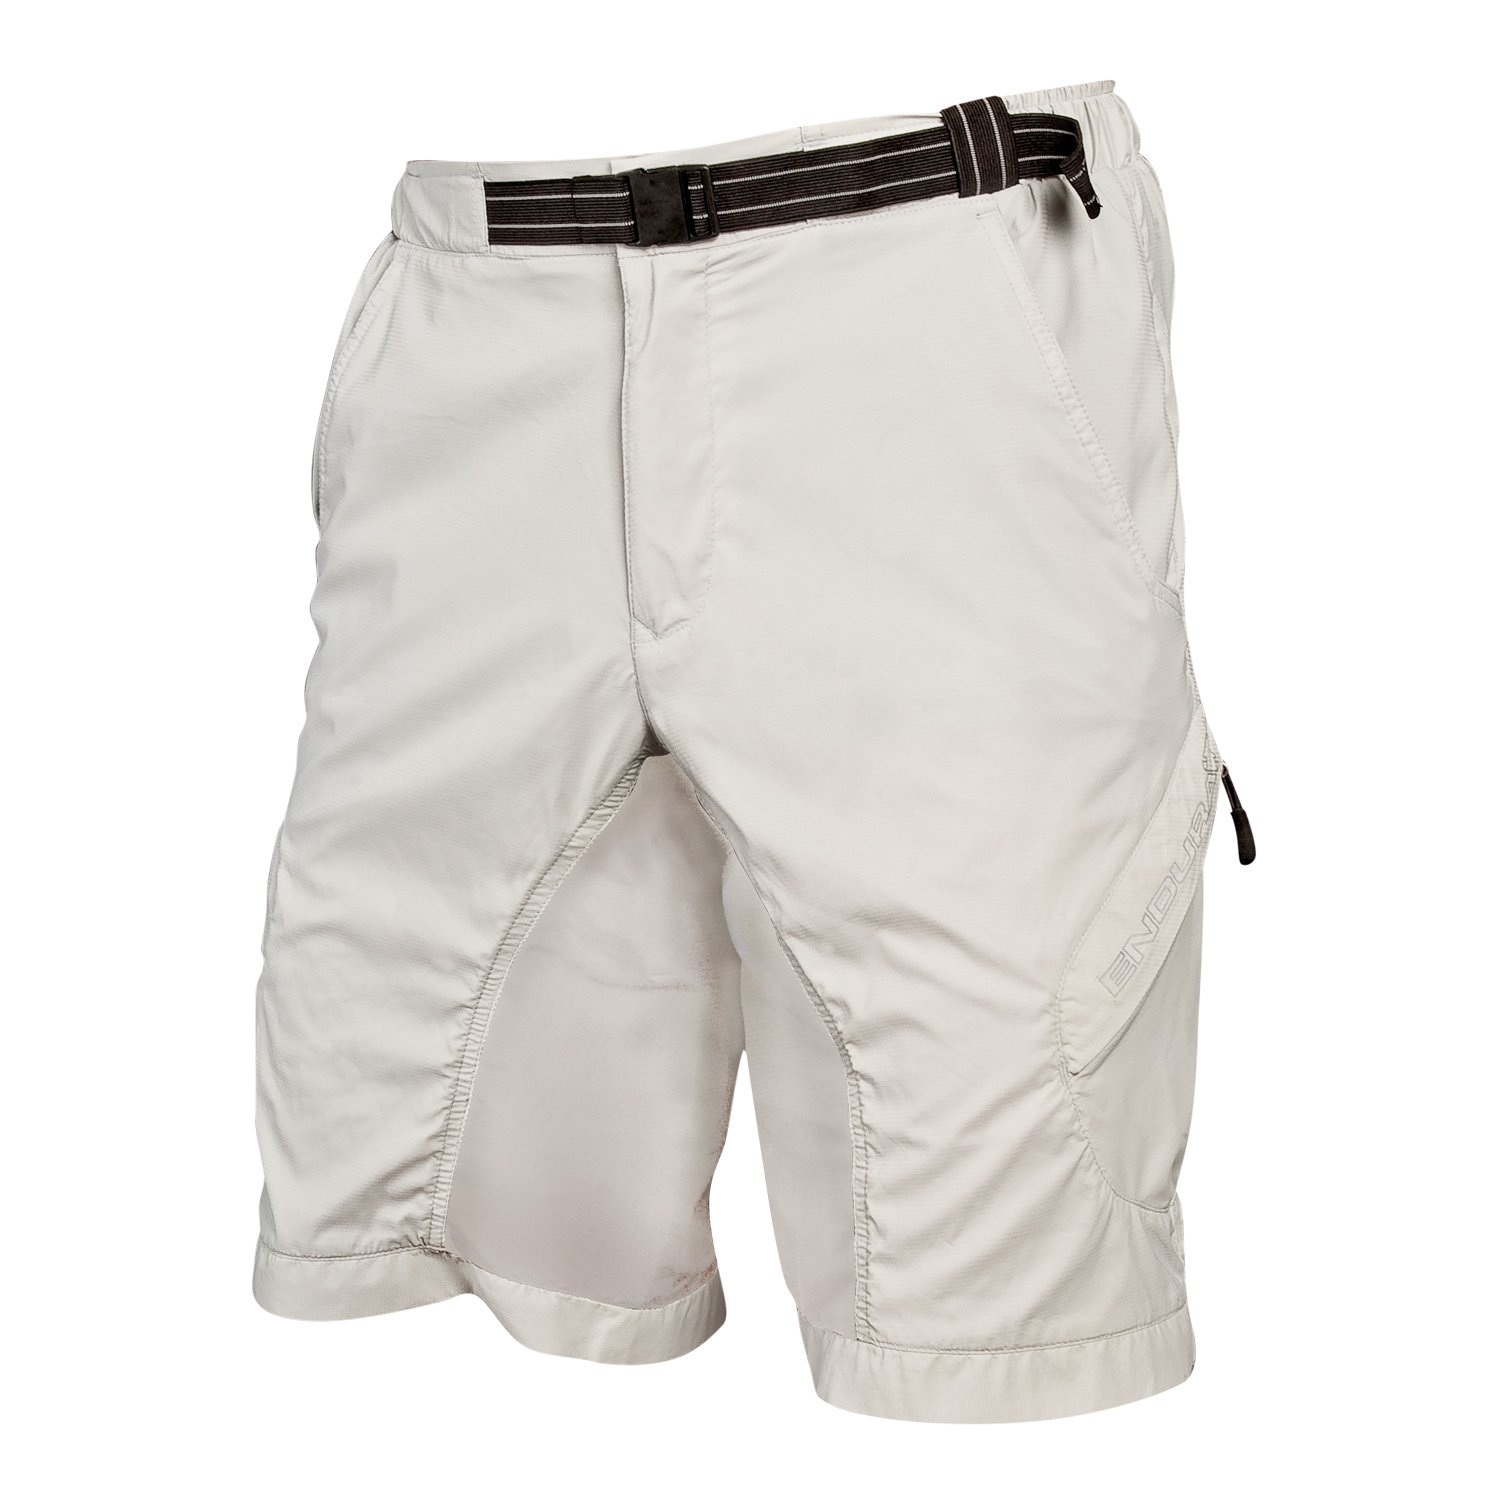 Endura – MAN Hummvee Lite Shorts (with Liner Short), Farbe Stone, Größe S